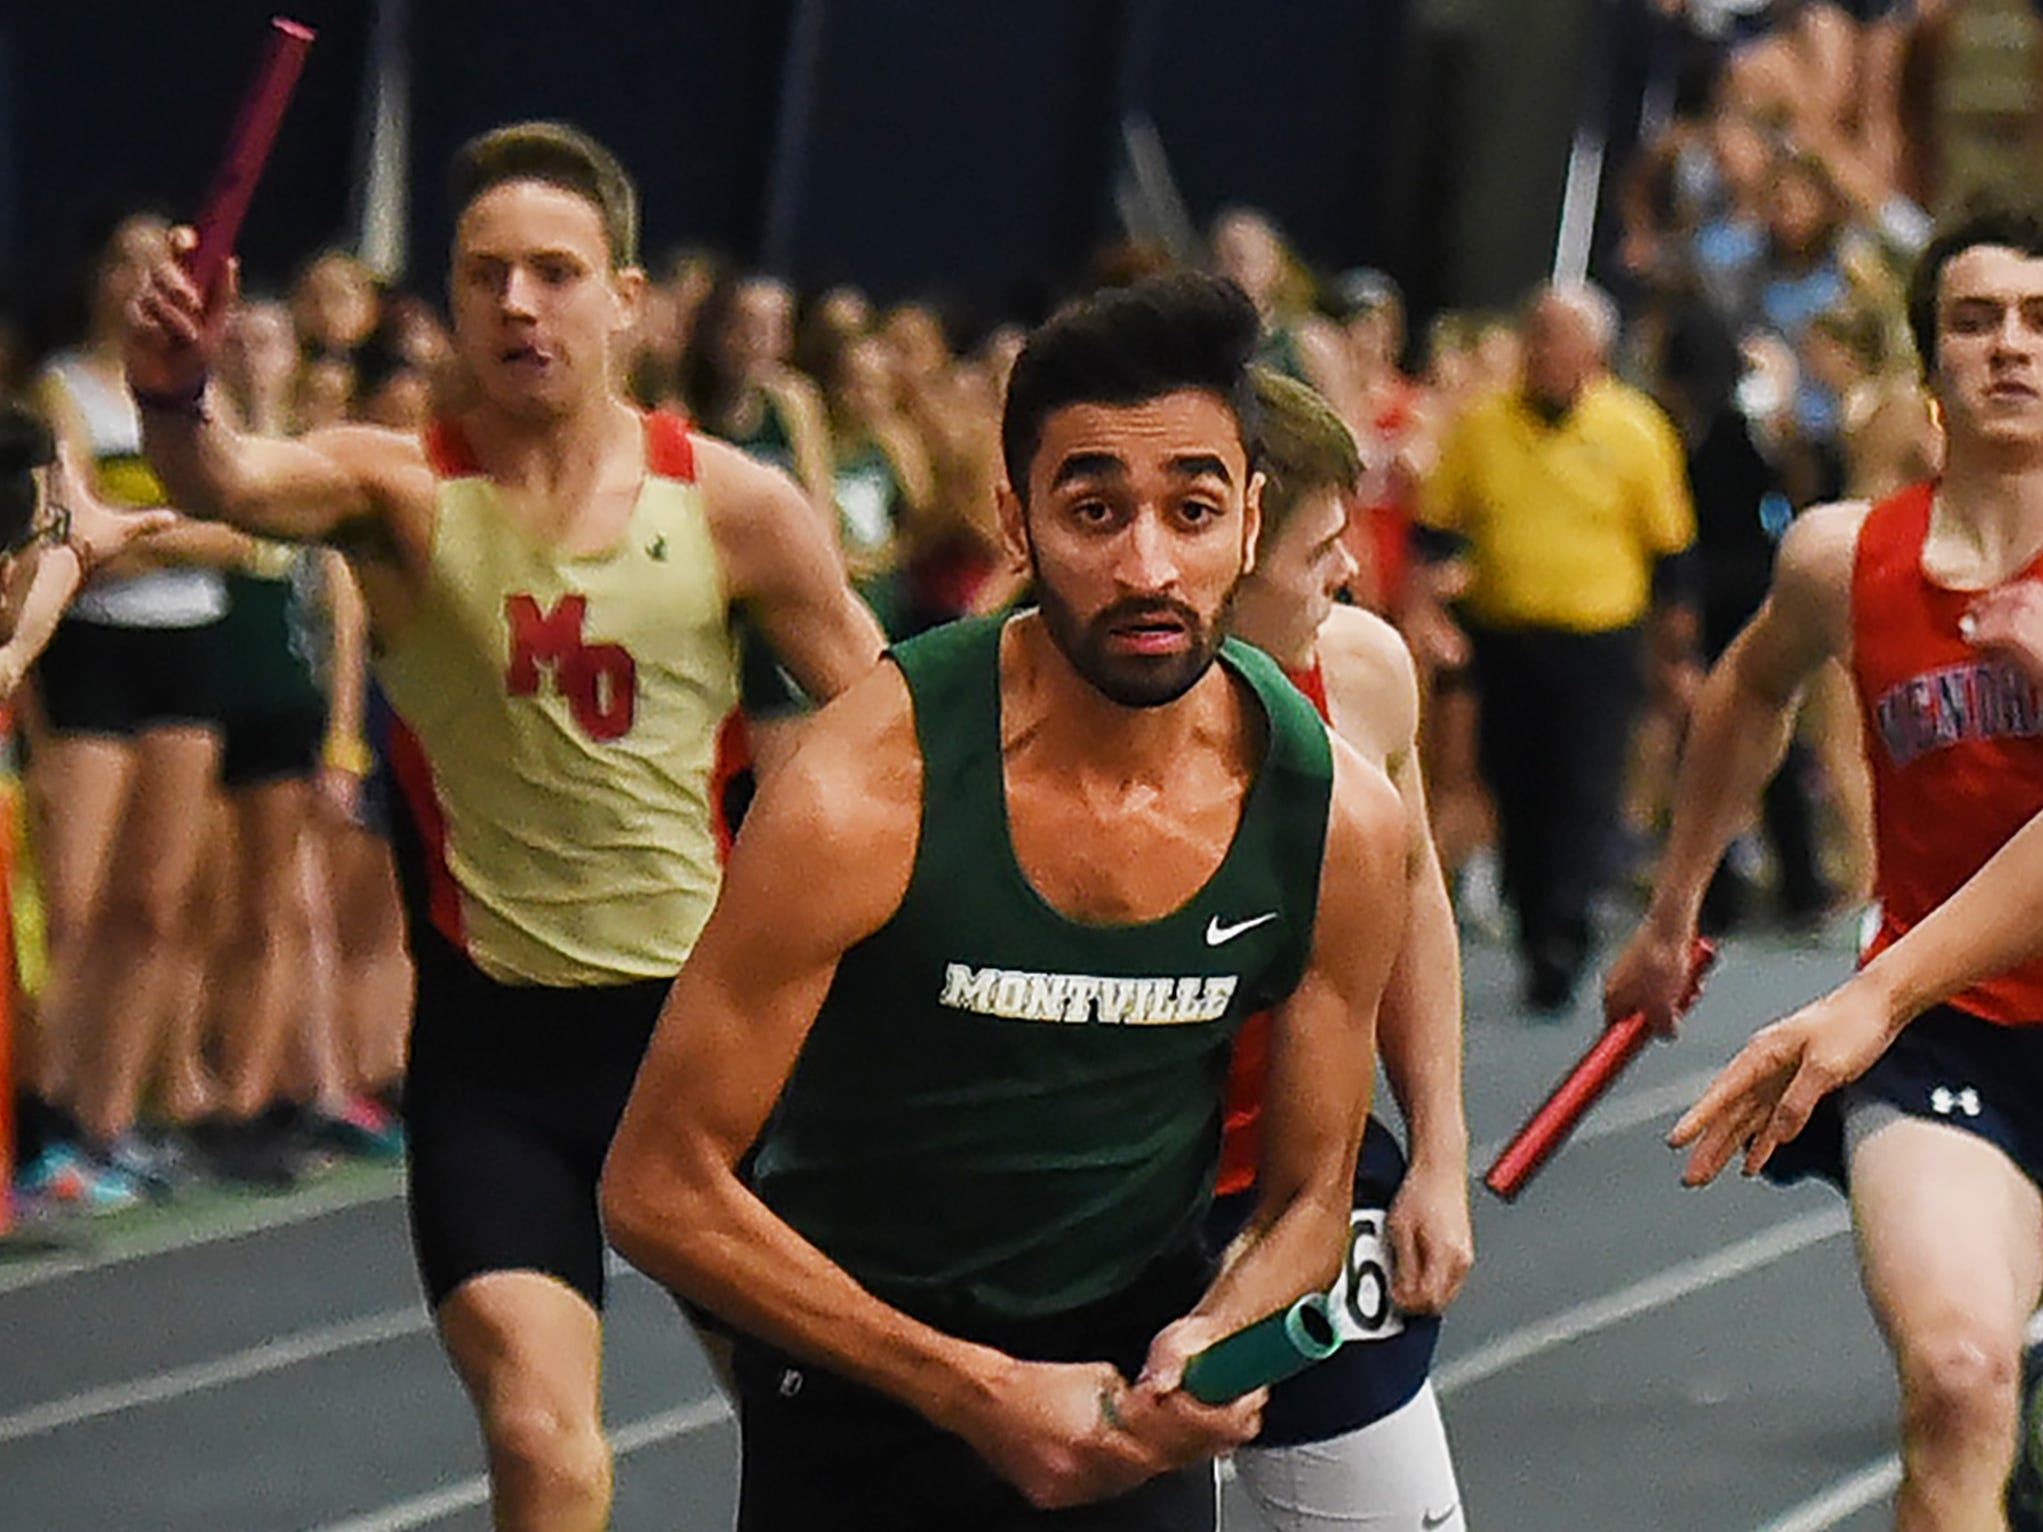 Montville senior Noman Saeed of   carries the baton in the 4x200 during Morris County Relays at Drew University in Madison on 01/09/19.